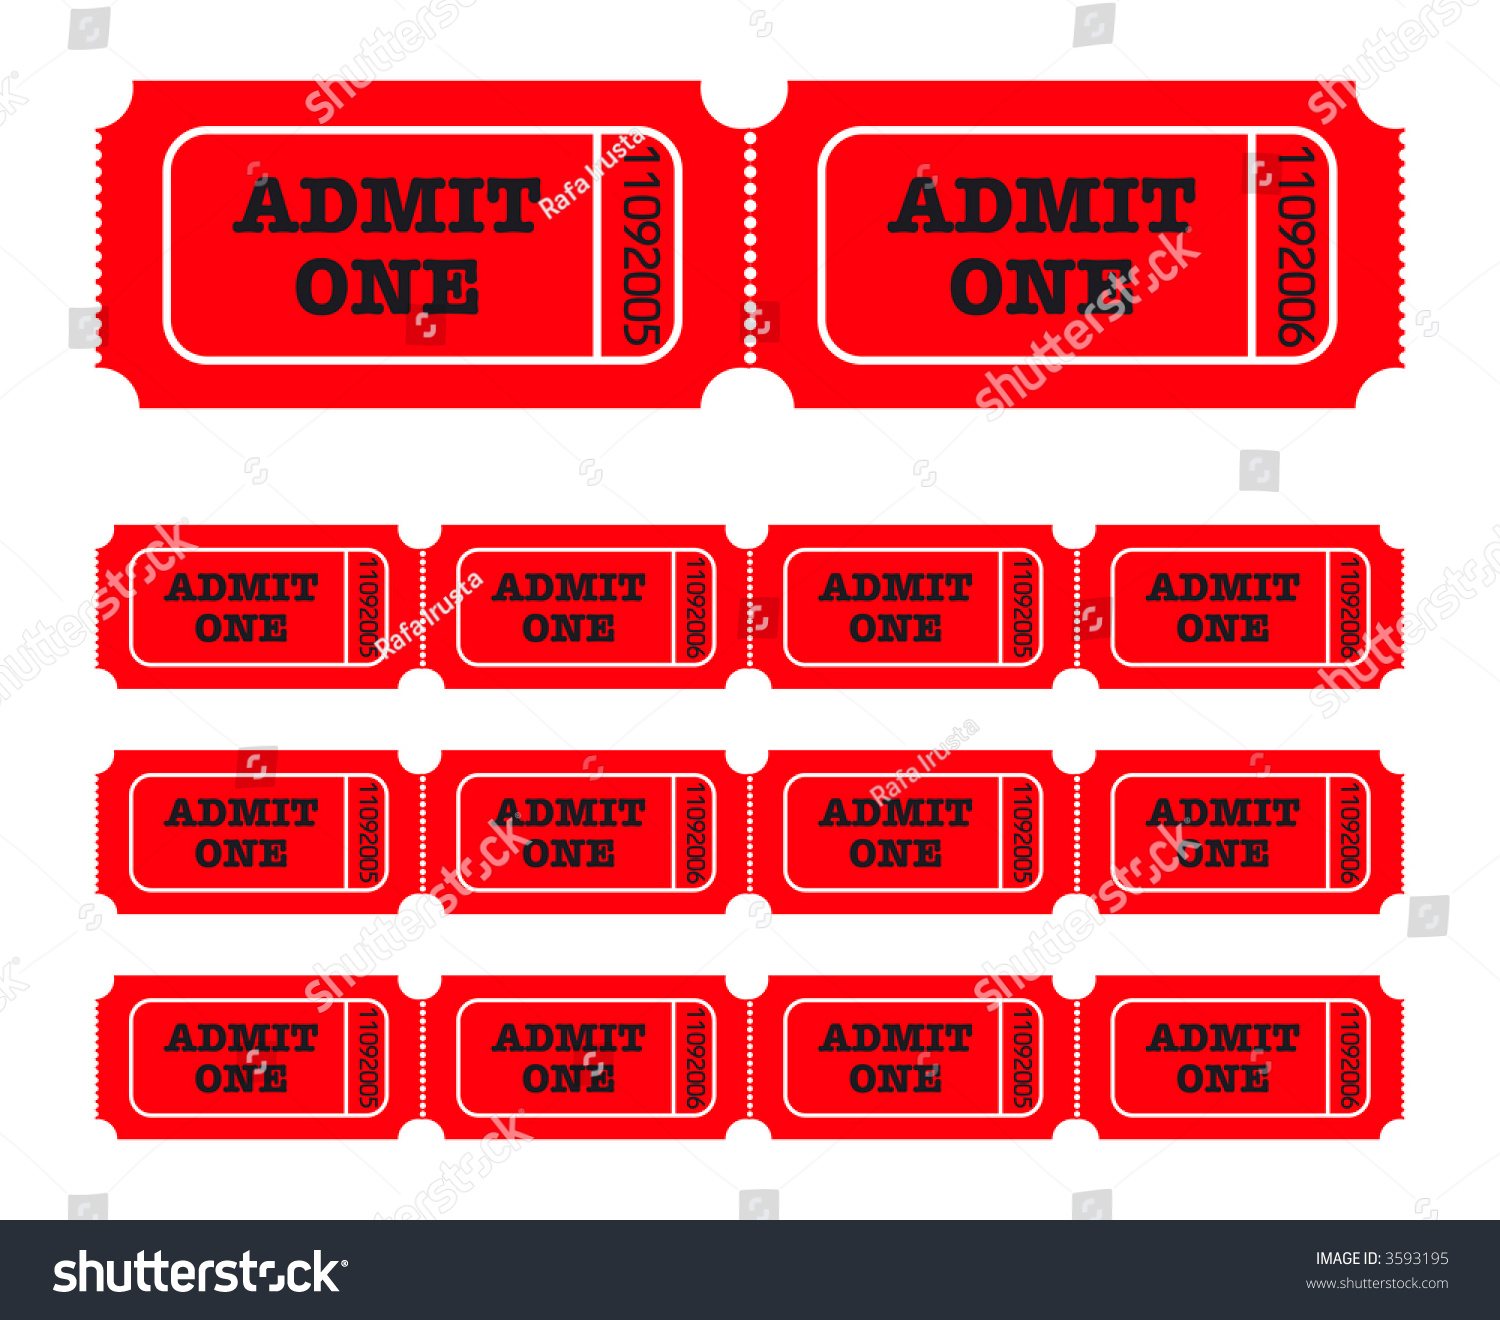 admit one template – Ticket Admit One Template